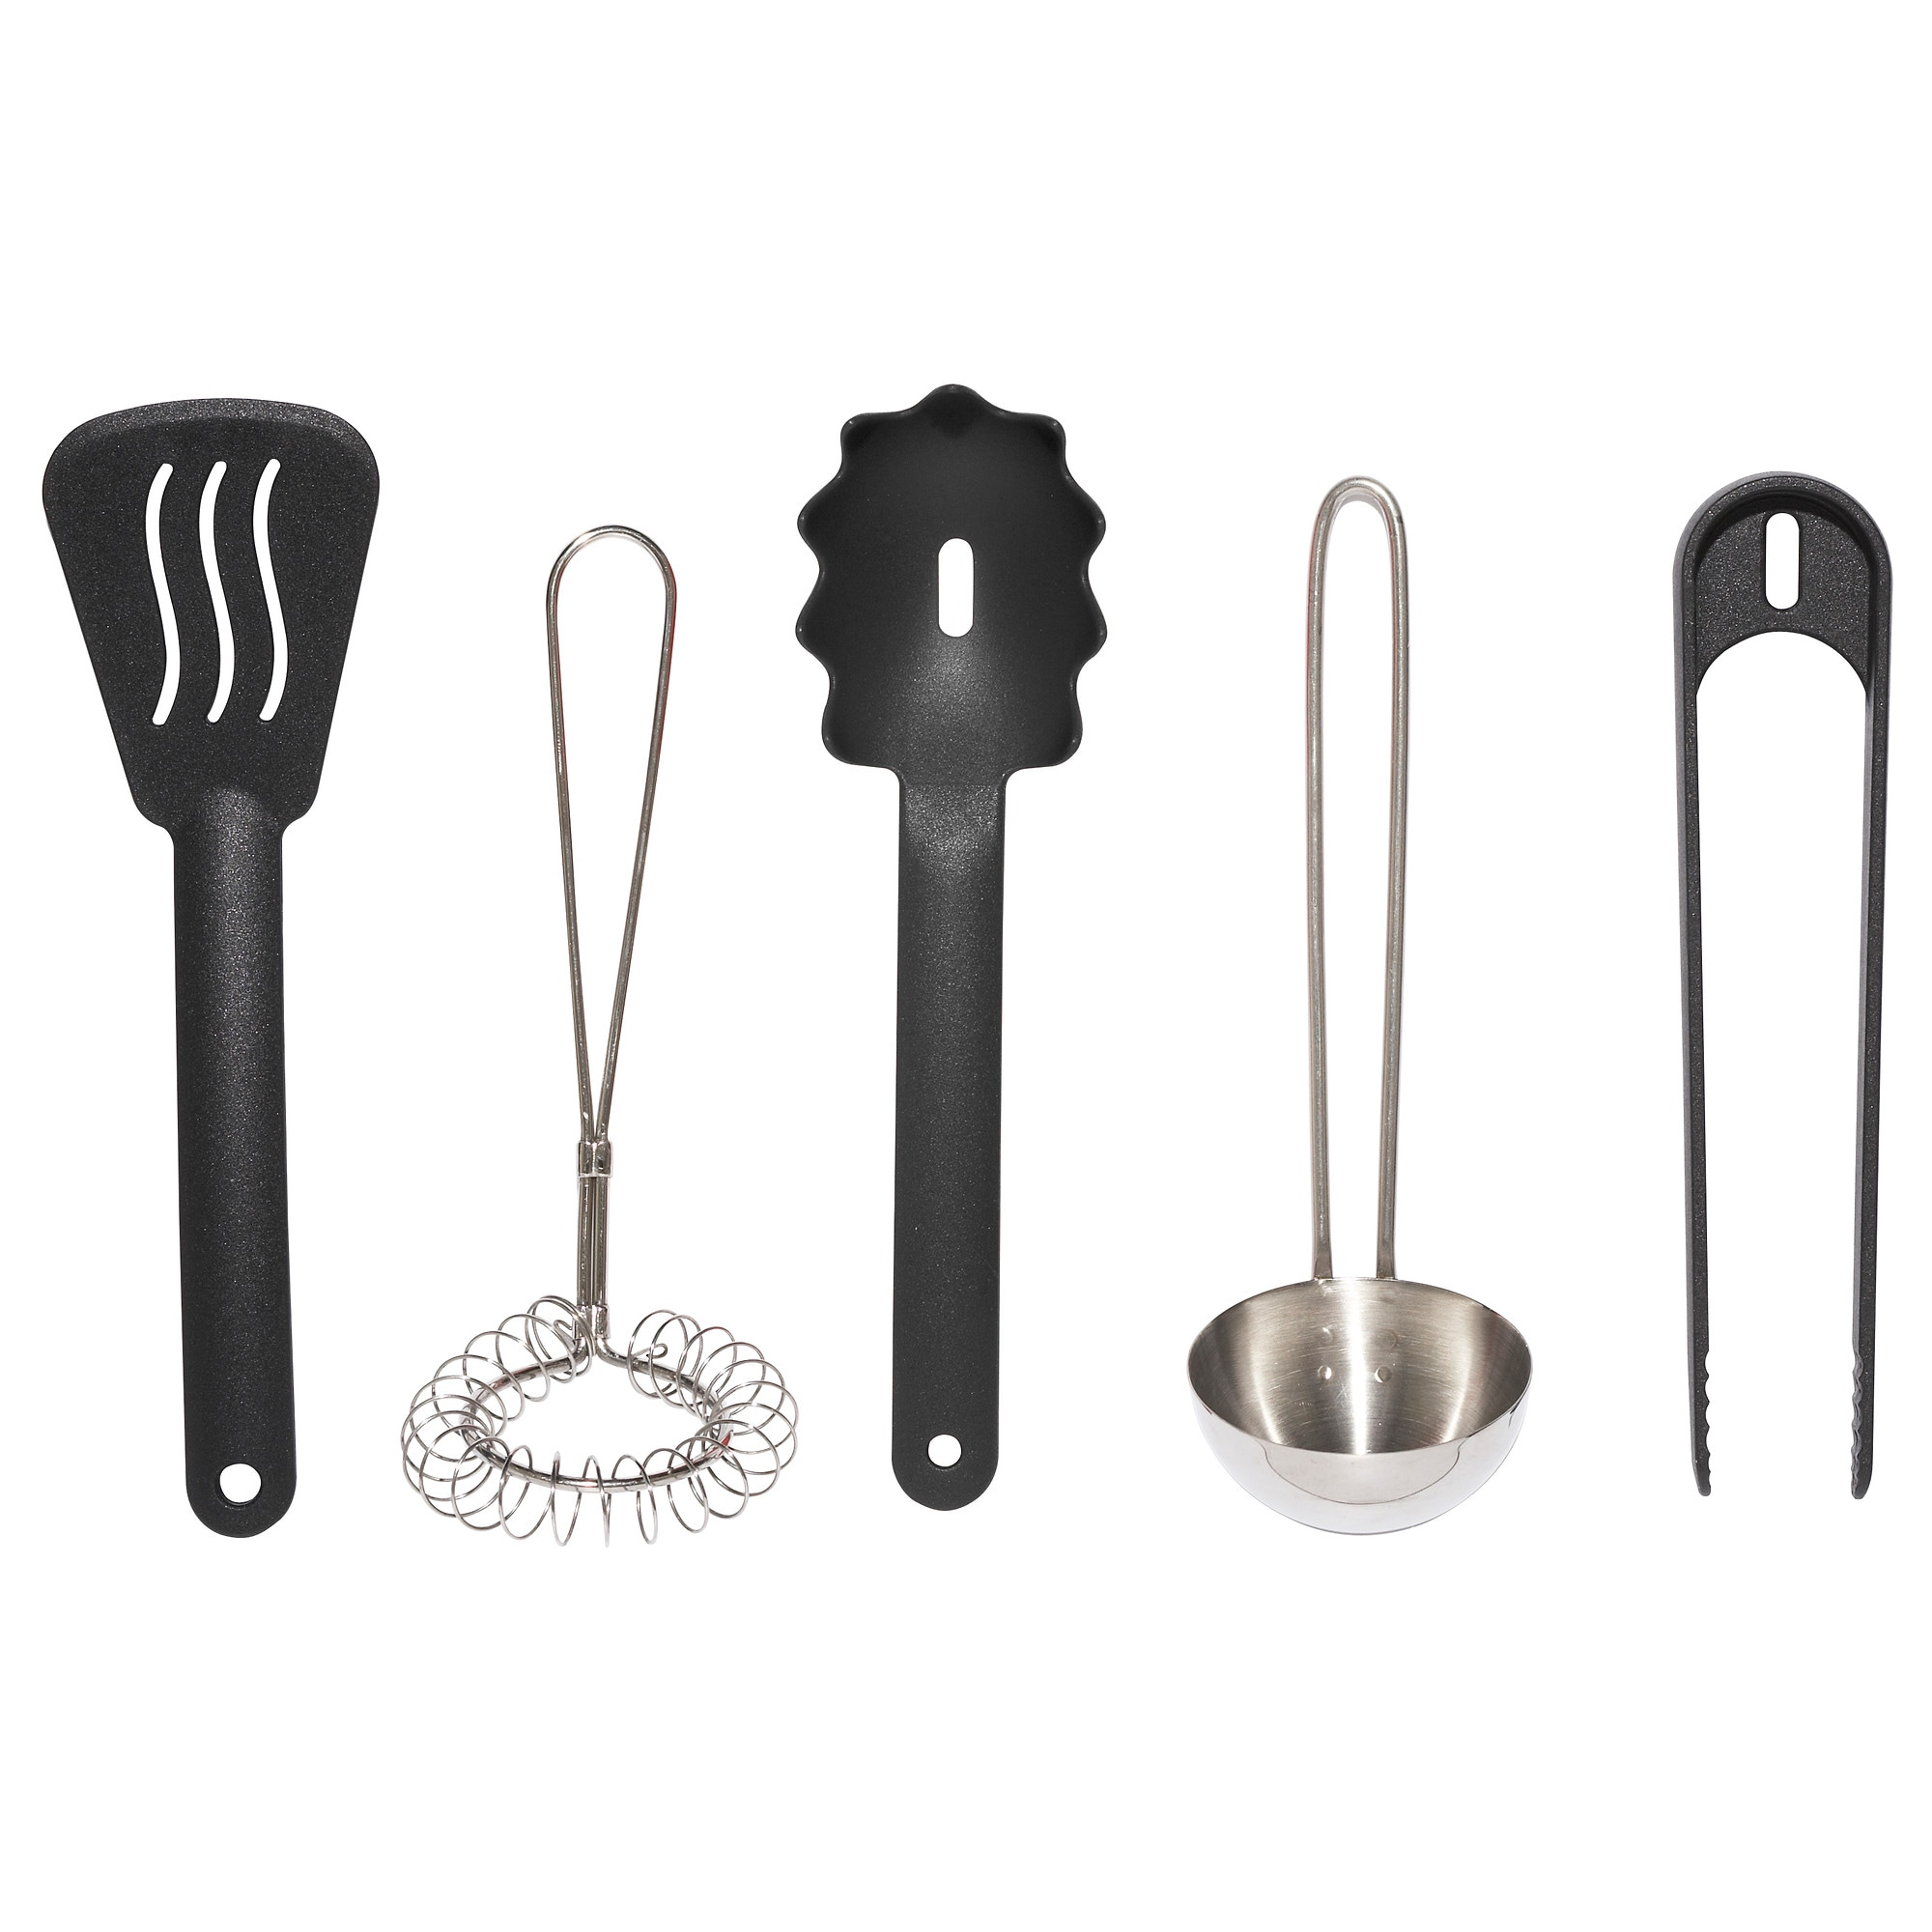 Kitchen Supplies Drawing Duktig 5-piece Kitchen Utensil